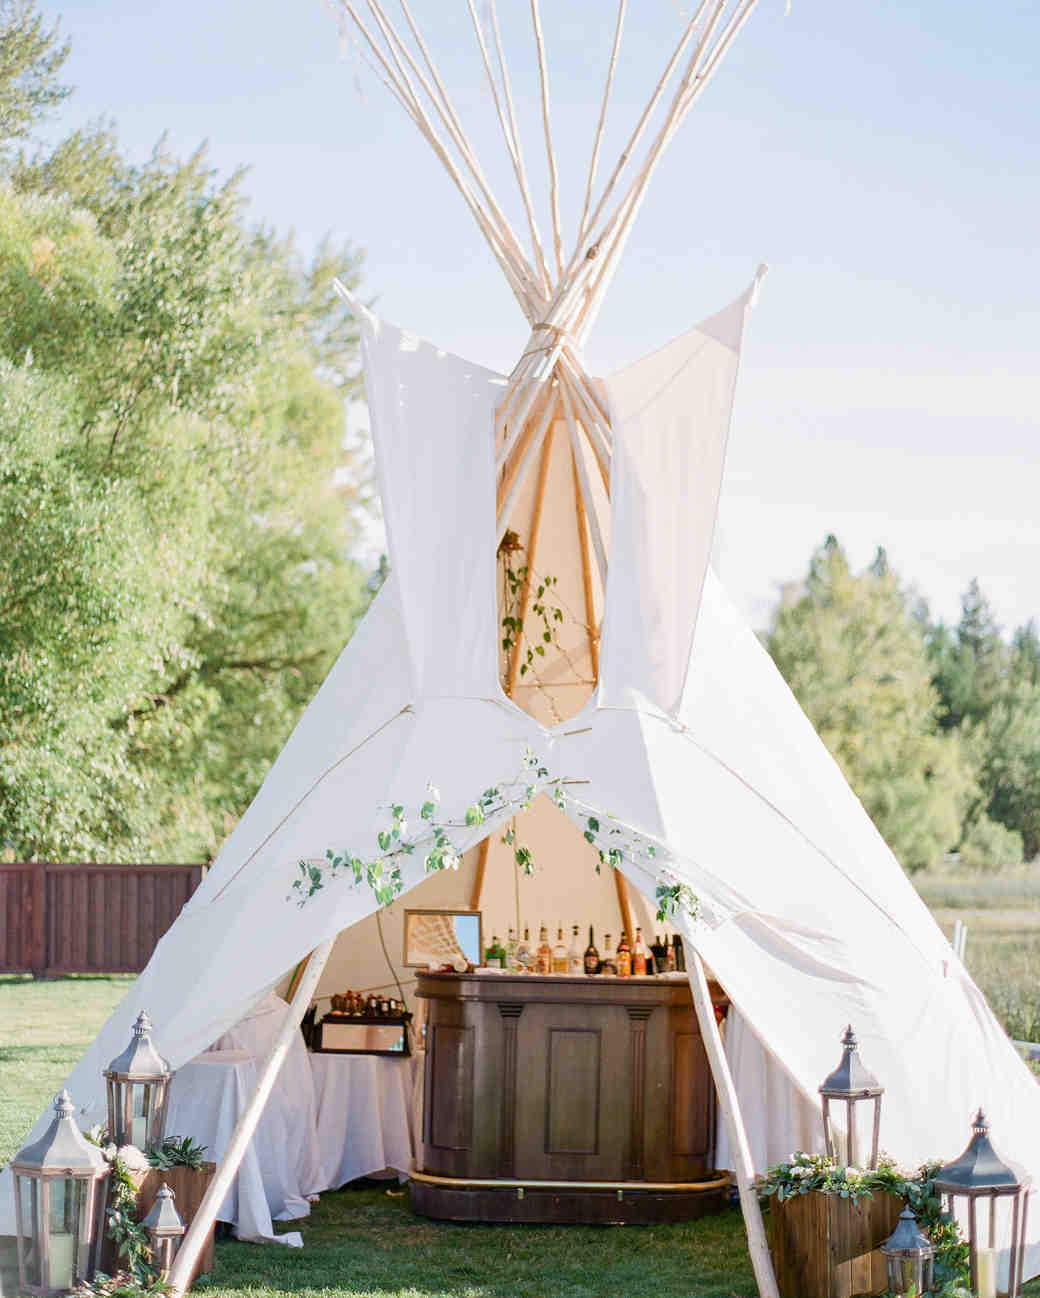 robin-kenny-wedding-teepee-083-s112068-0715.jpg